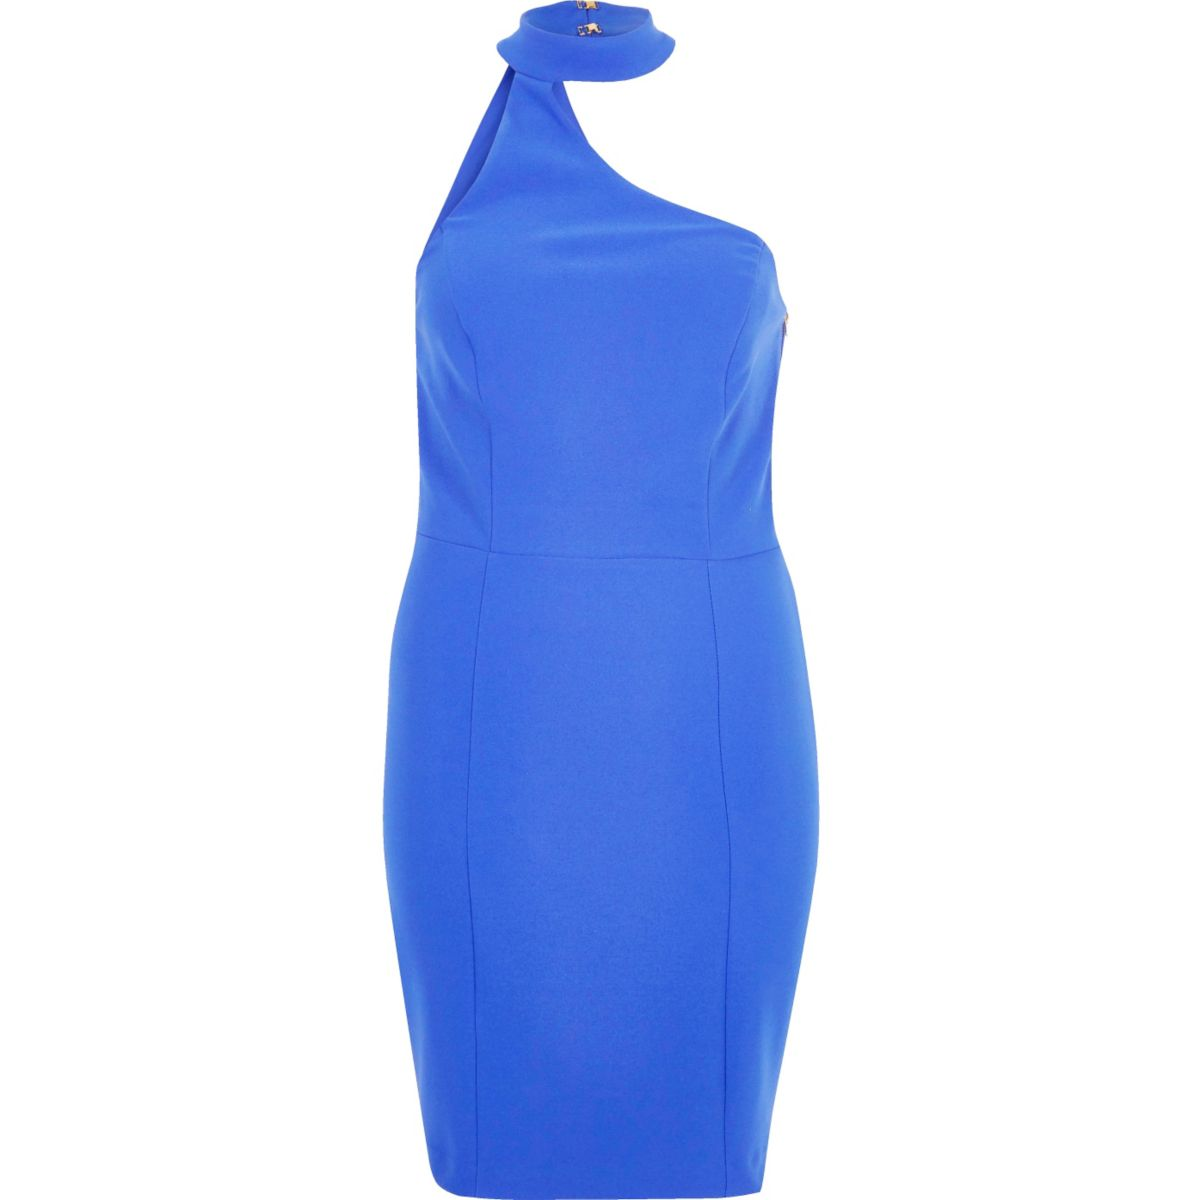 Blue one shoulder choker dress